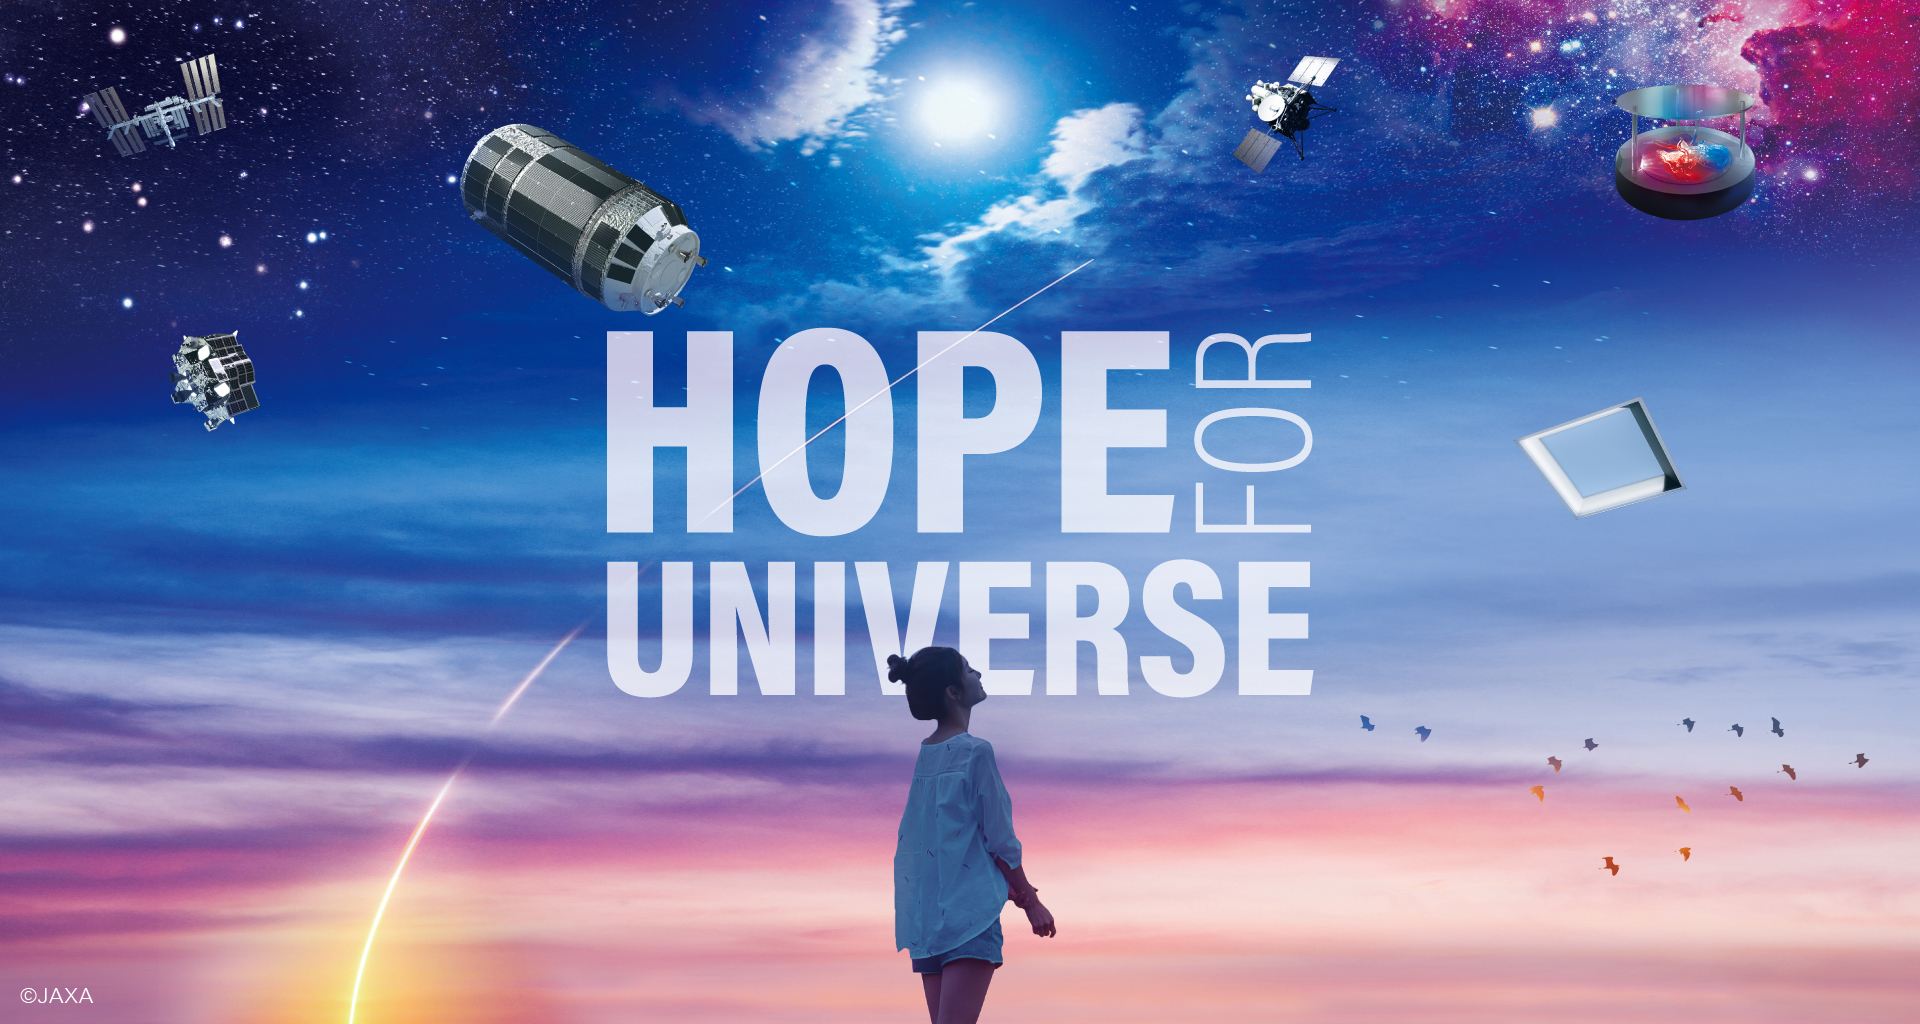 HOPE FOR UNIVERSE